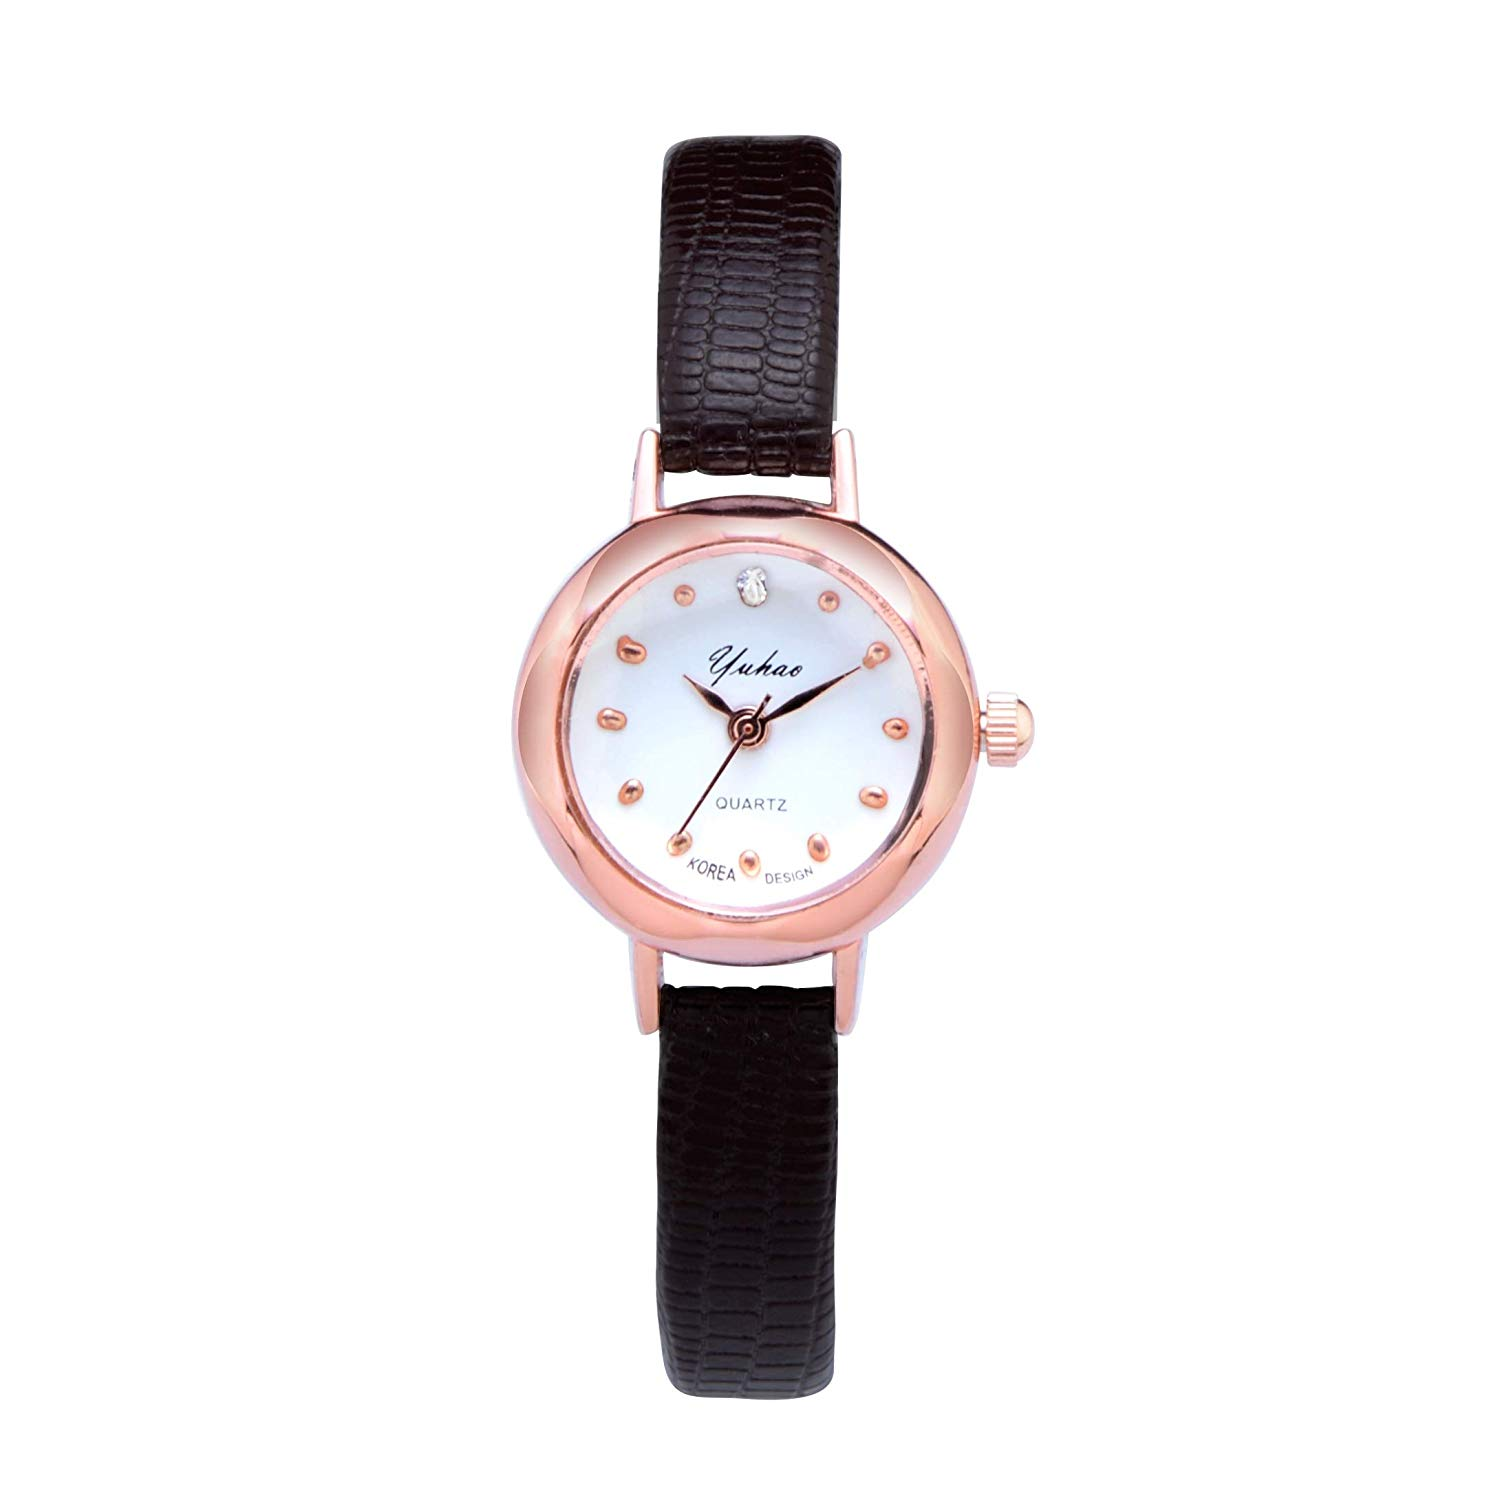 JEGOAU Unique Women Gift Watch Women Girls Student Waterproof Casual Fashion Exquisite Rose Gold Retro Atmosphere fine (yu hao Black Box + Cell +